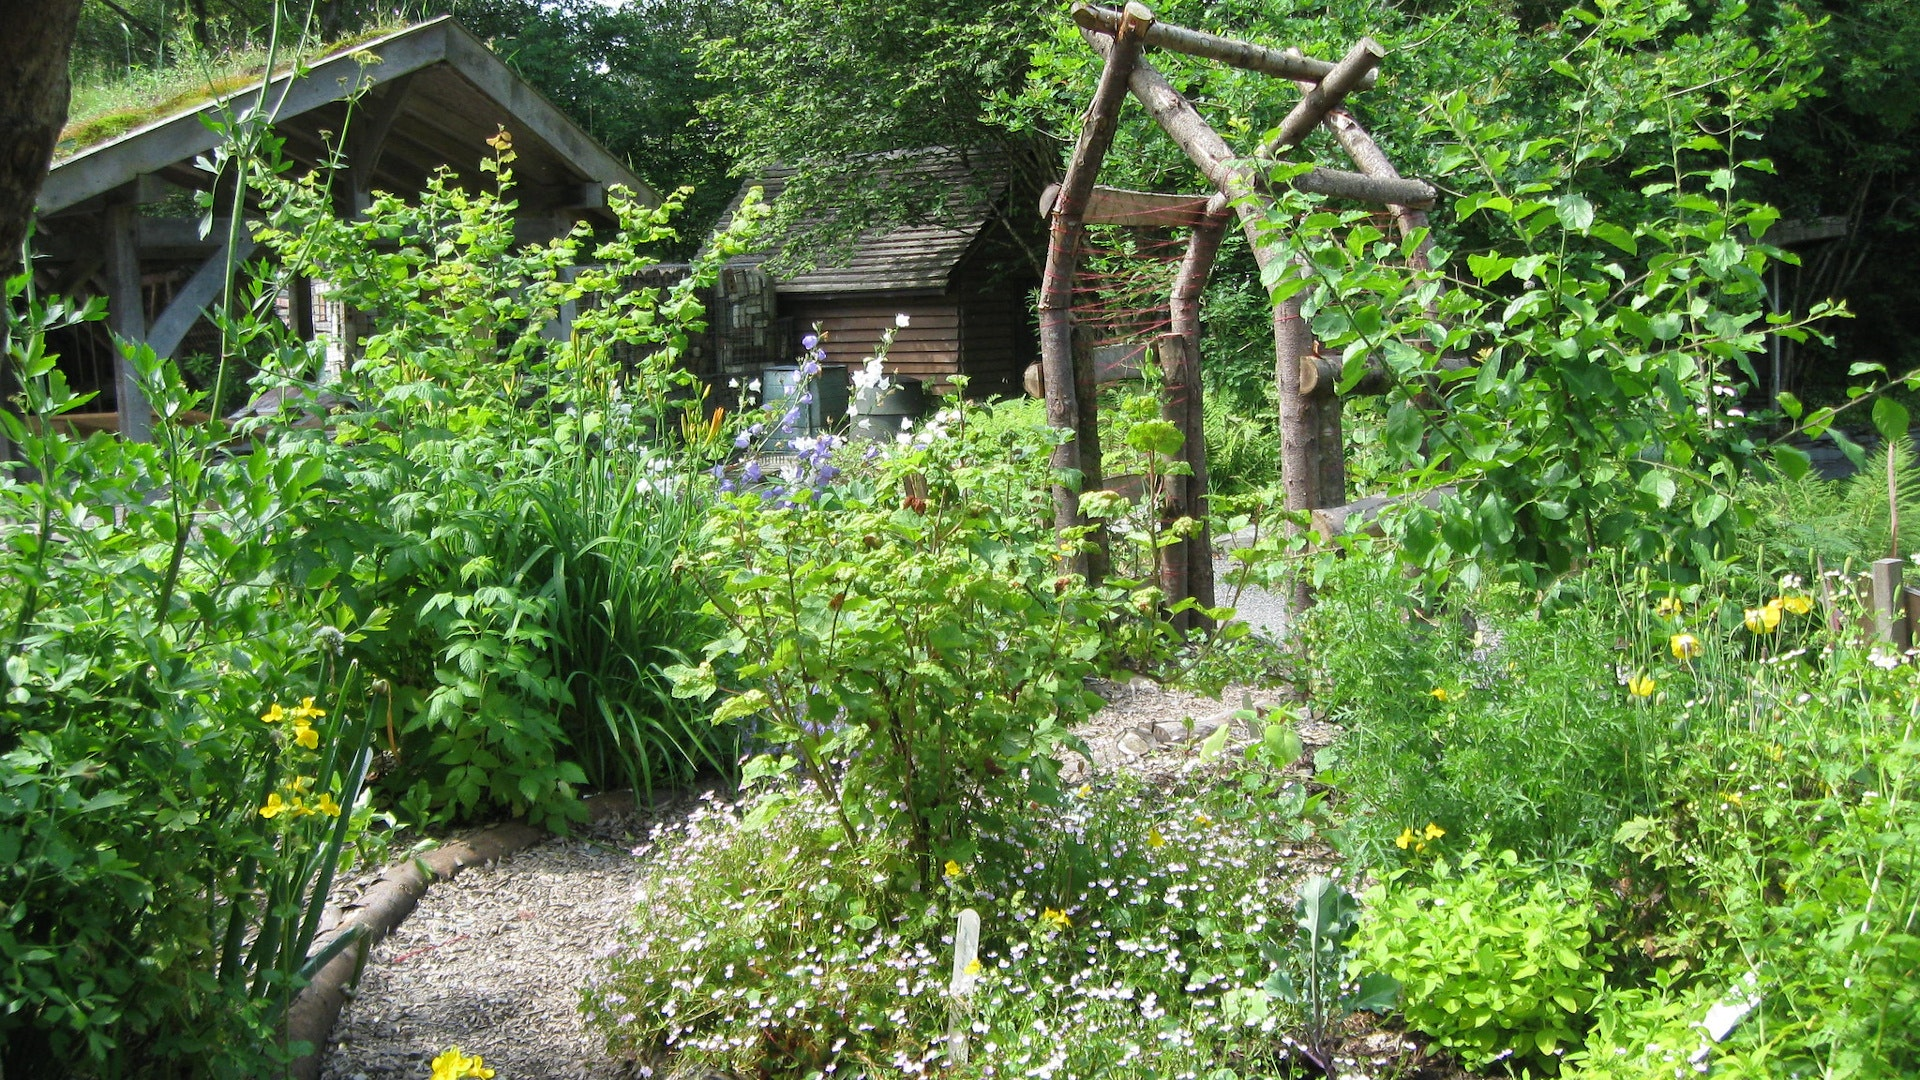 Forest garden display area at CAT